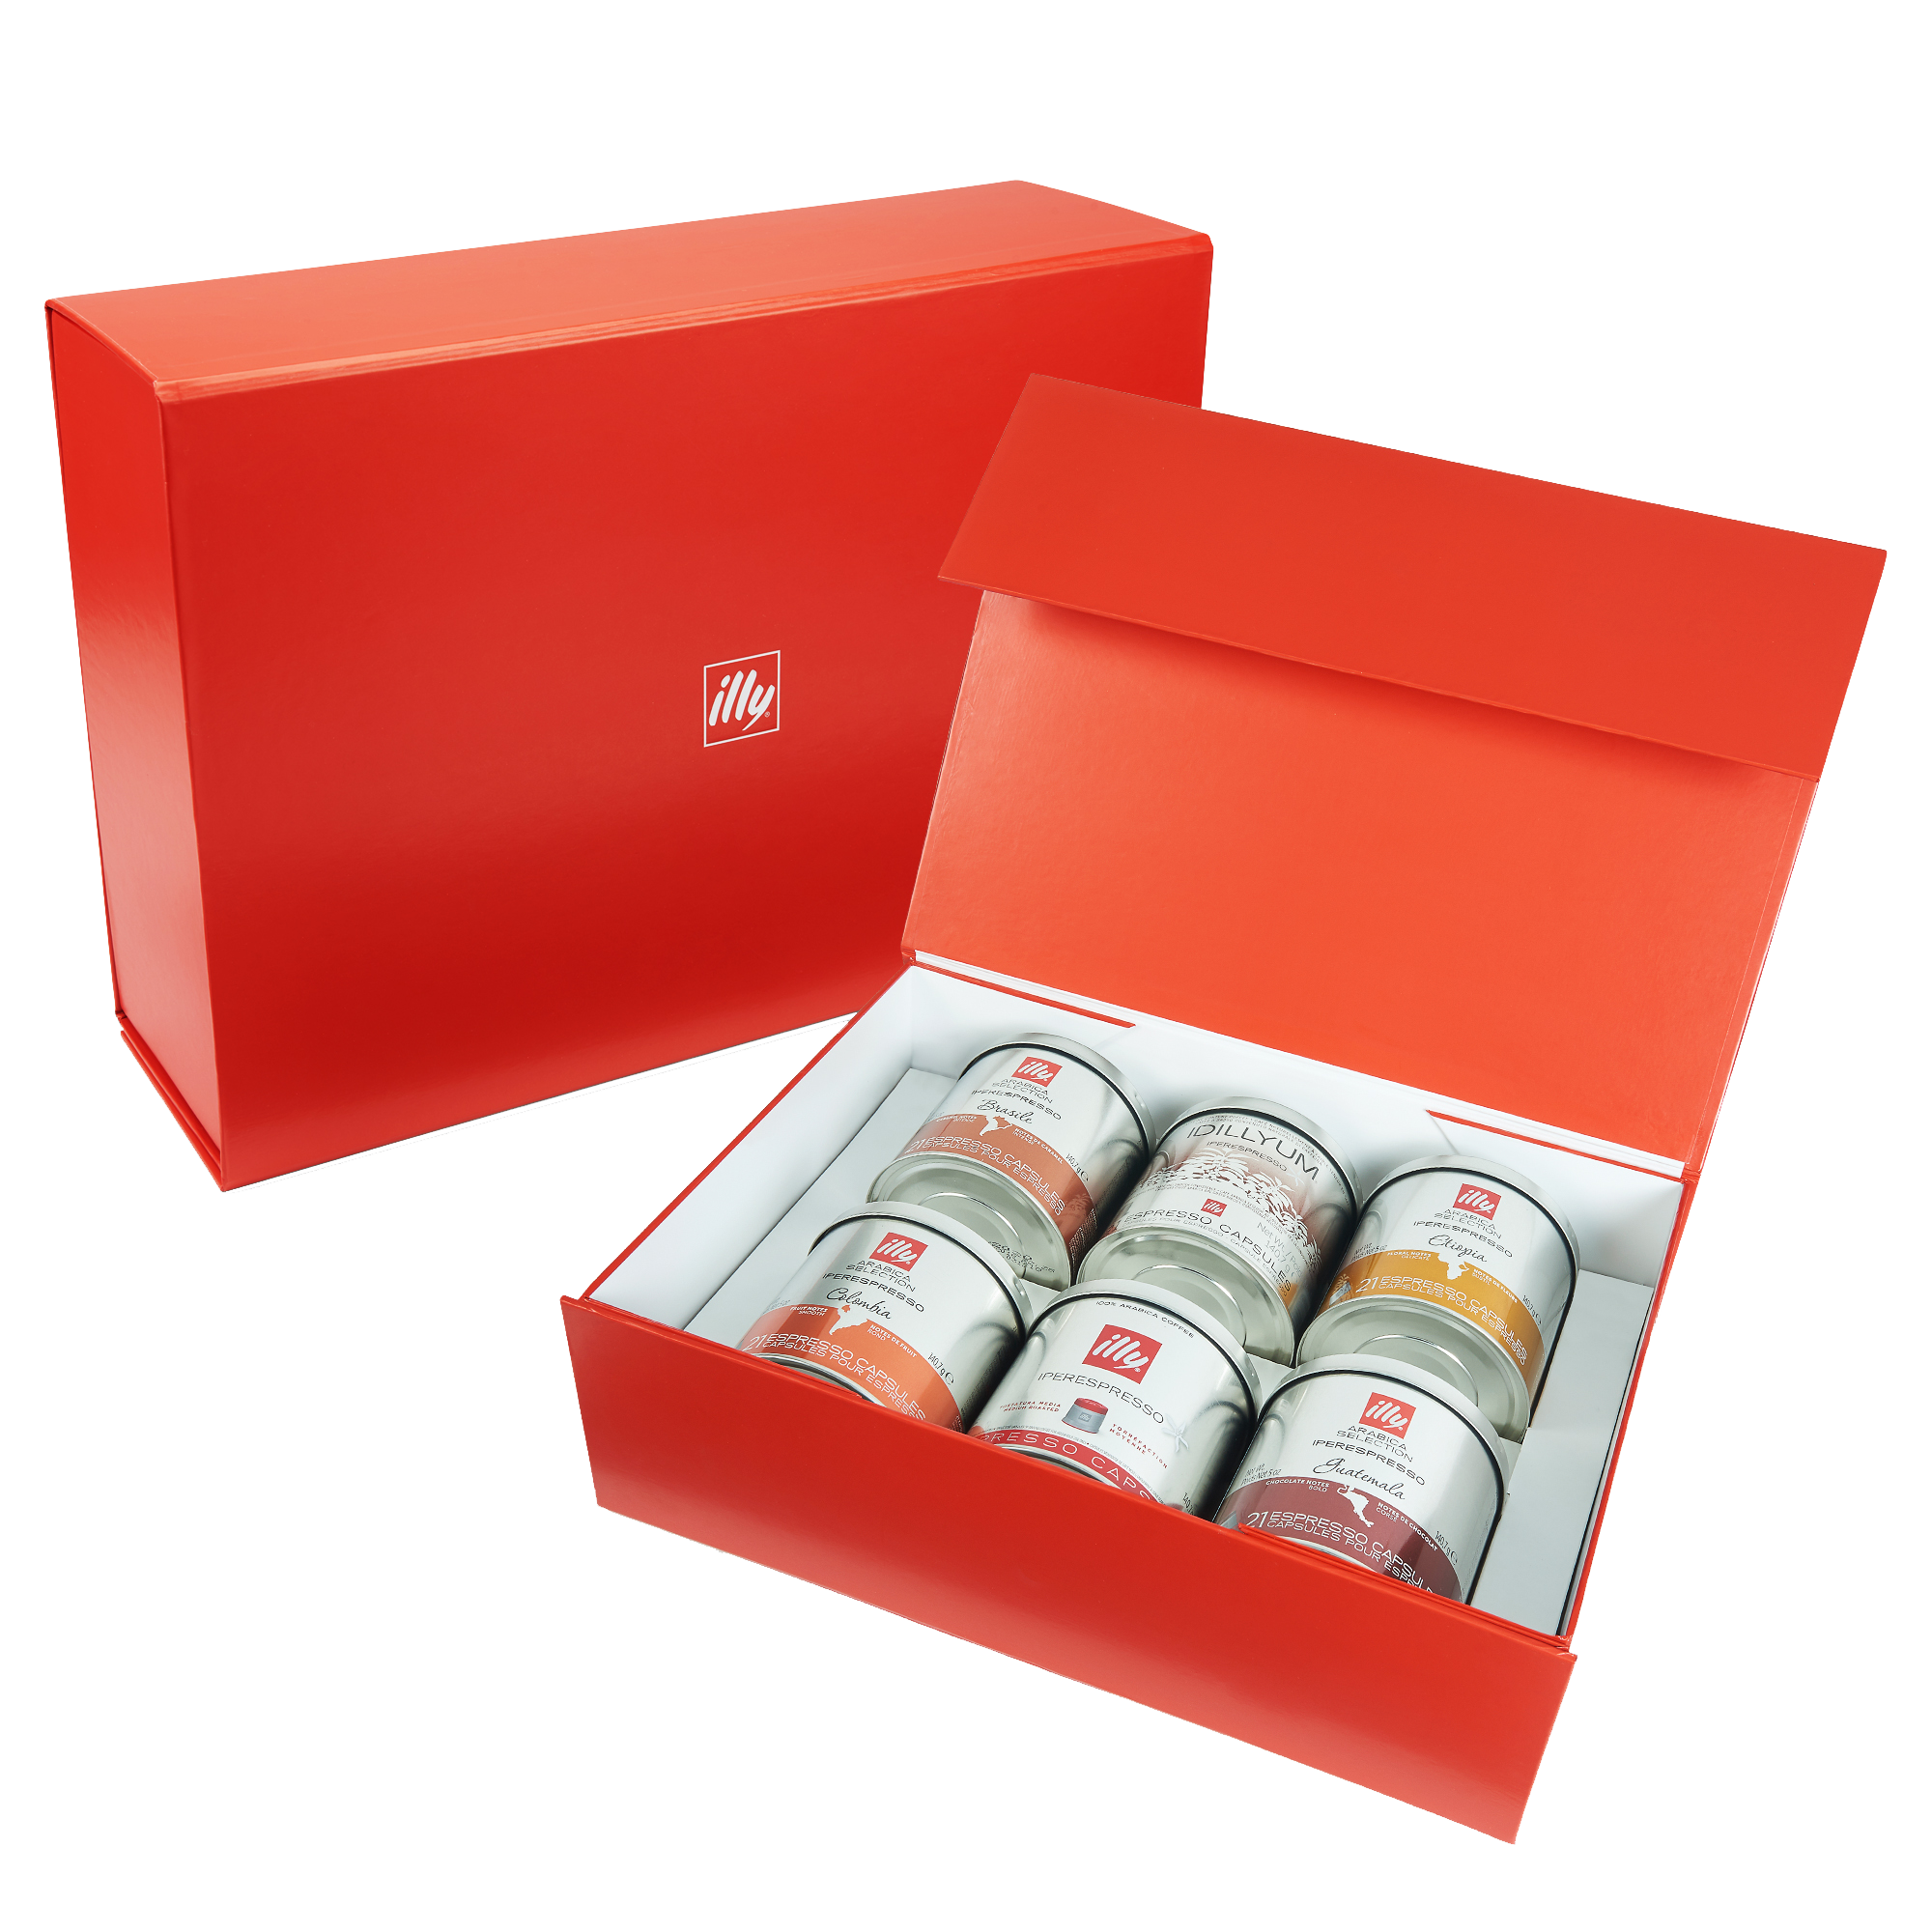 illy Origins of Taste iperEspresso 6-Tin Gift Set